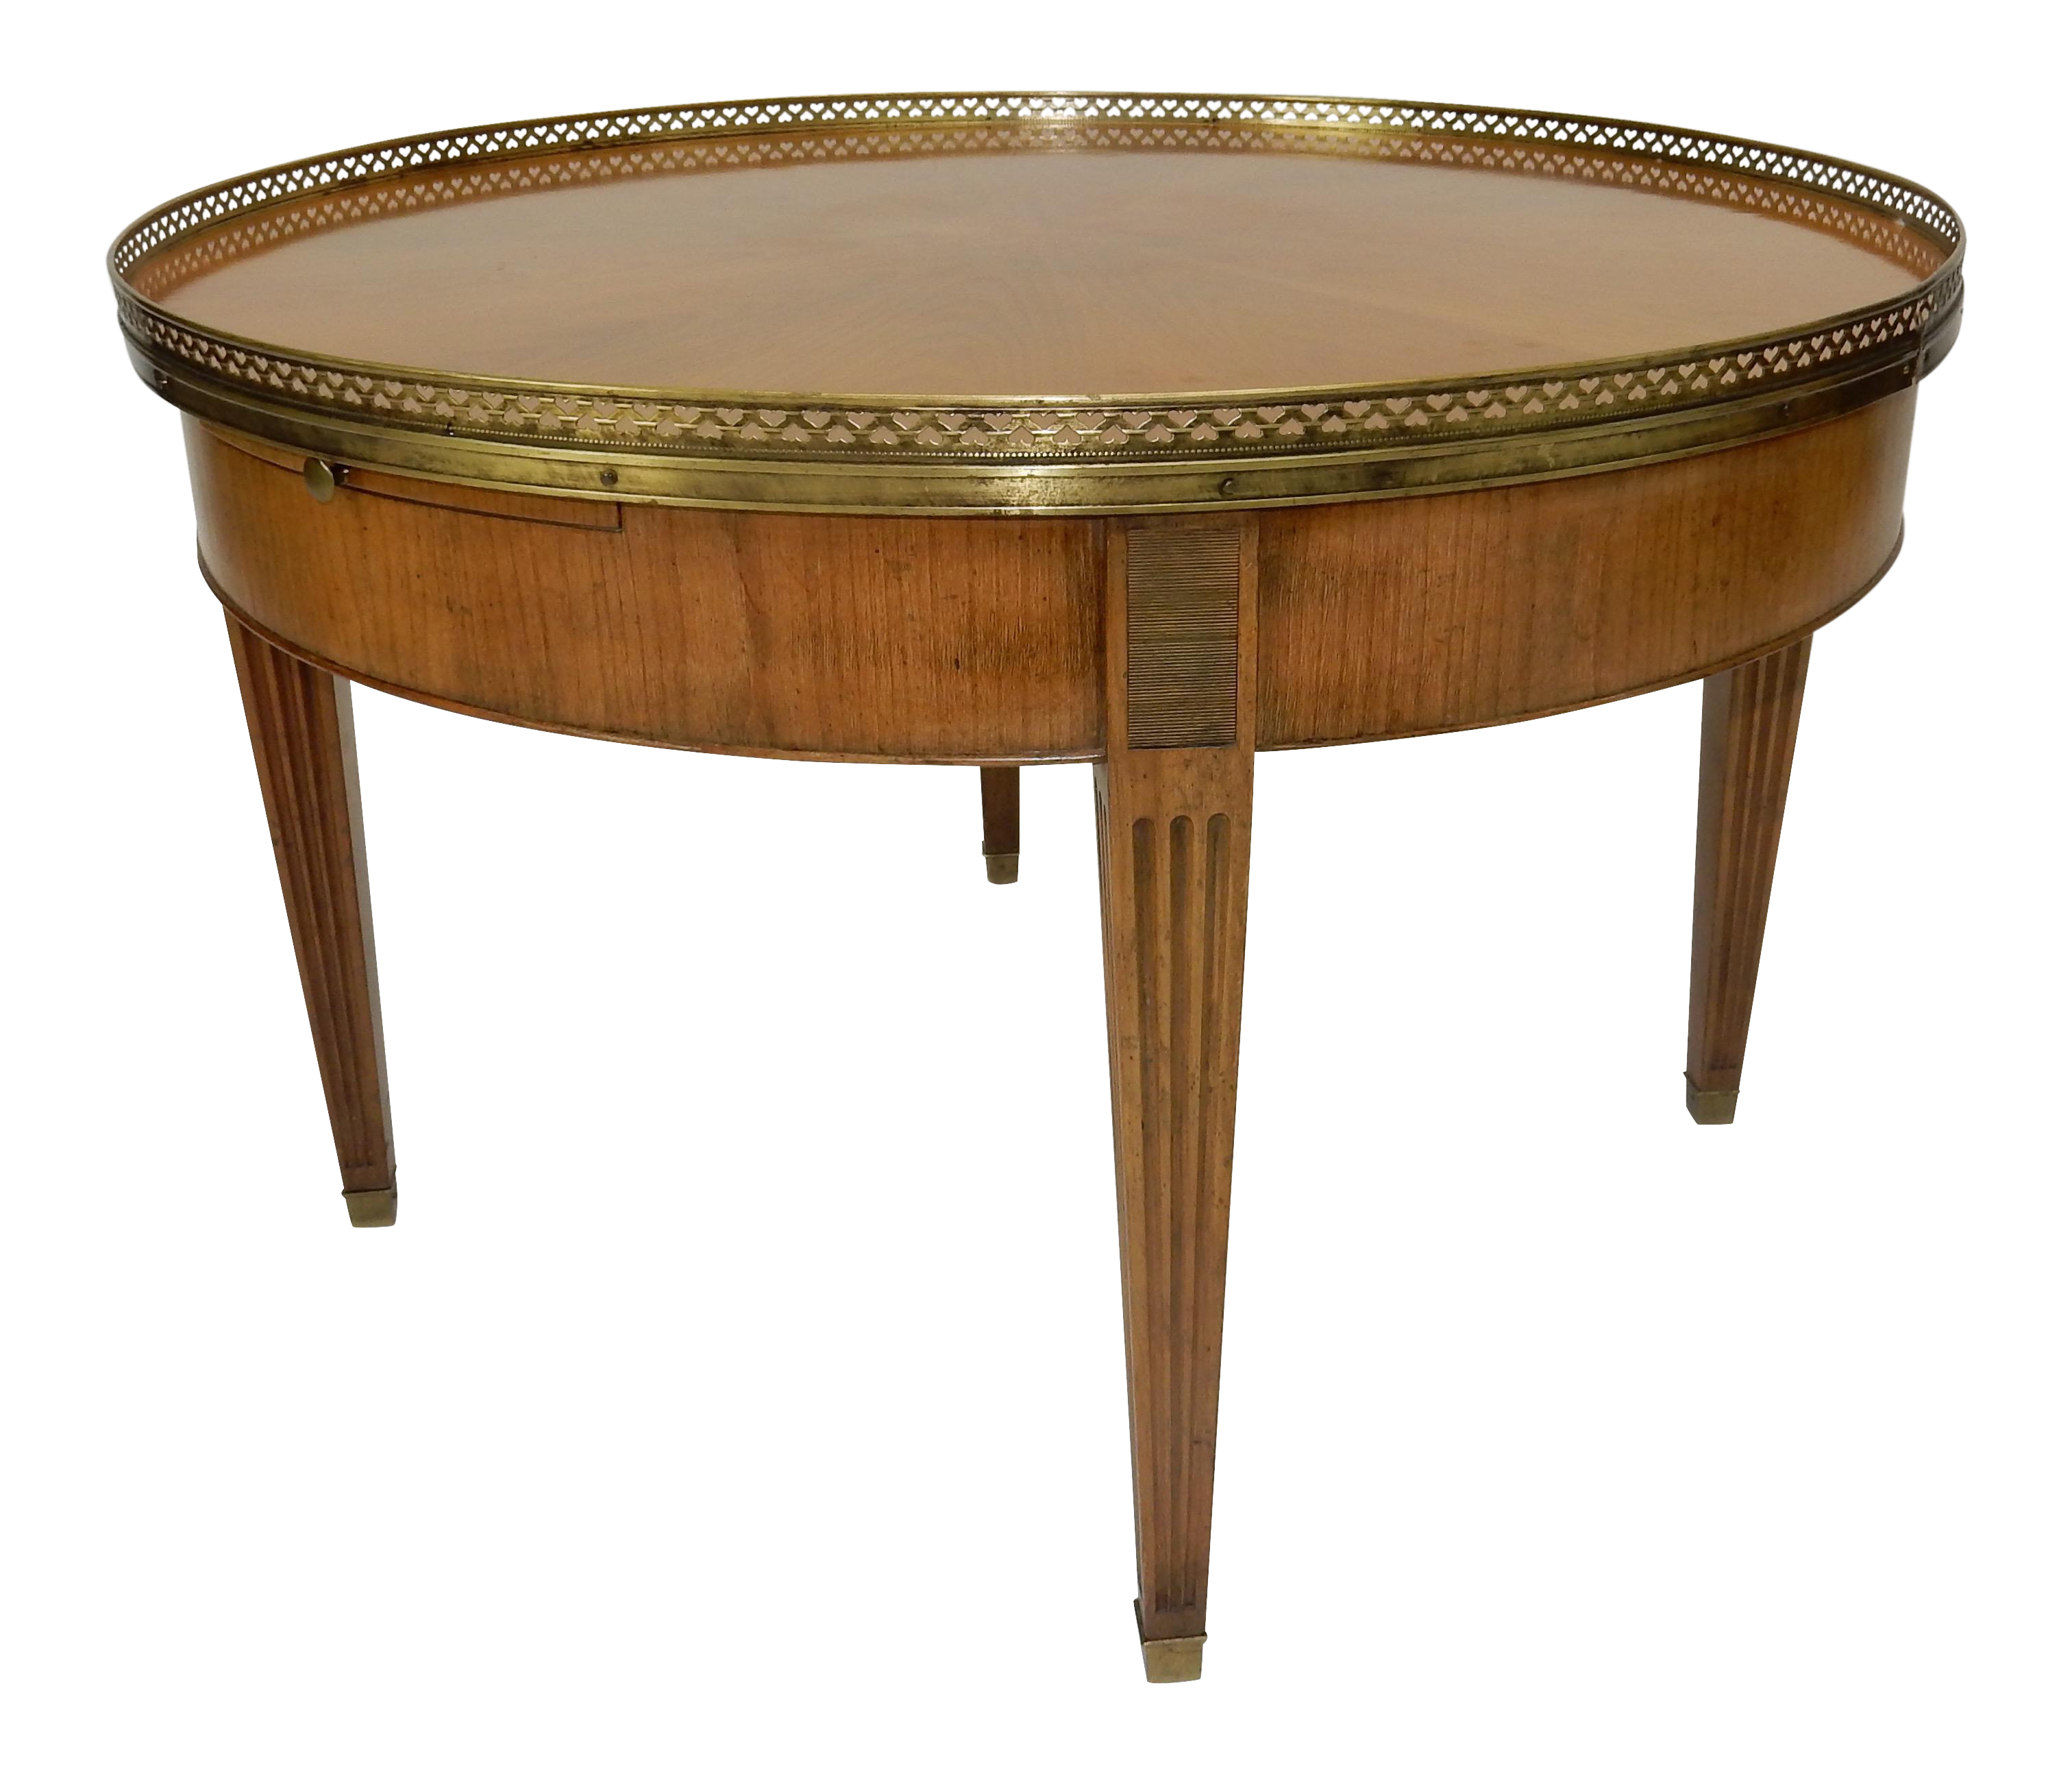 High Quality Baker Furniture Regency Directoire Style Round Coffee Bouillotte Table